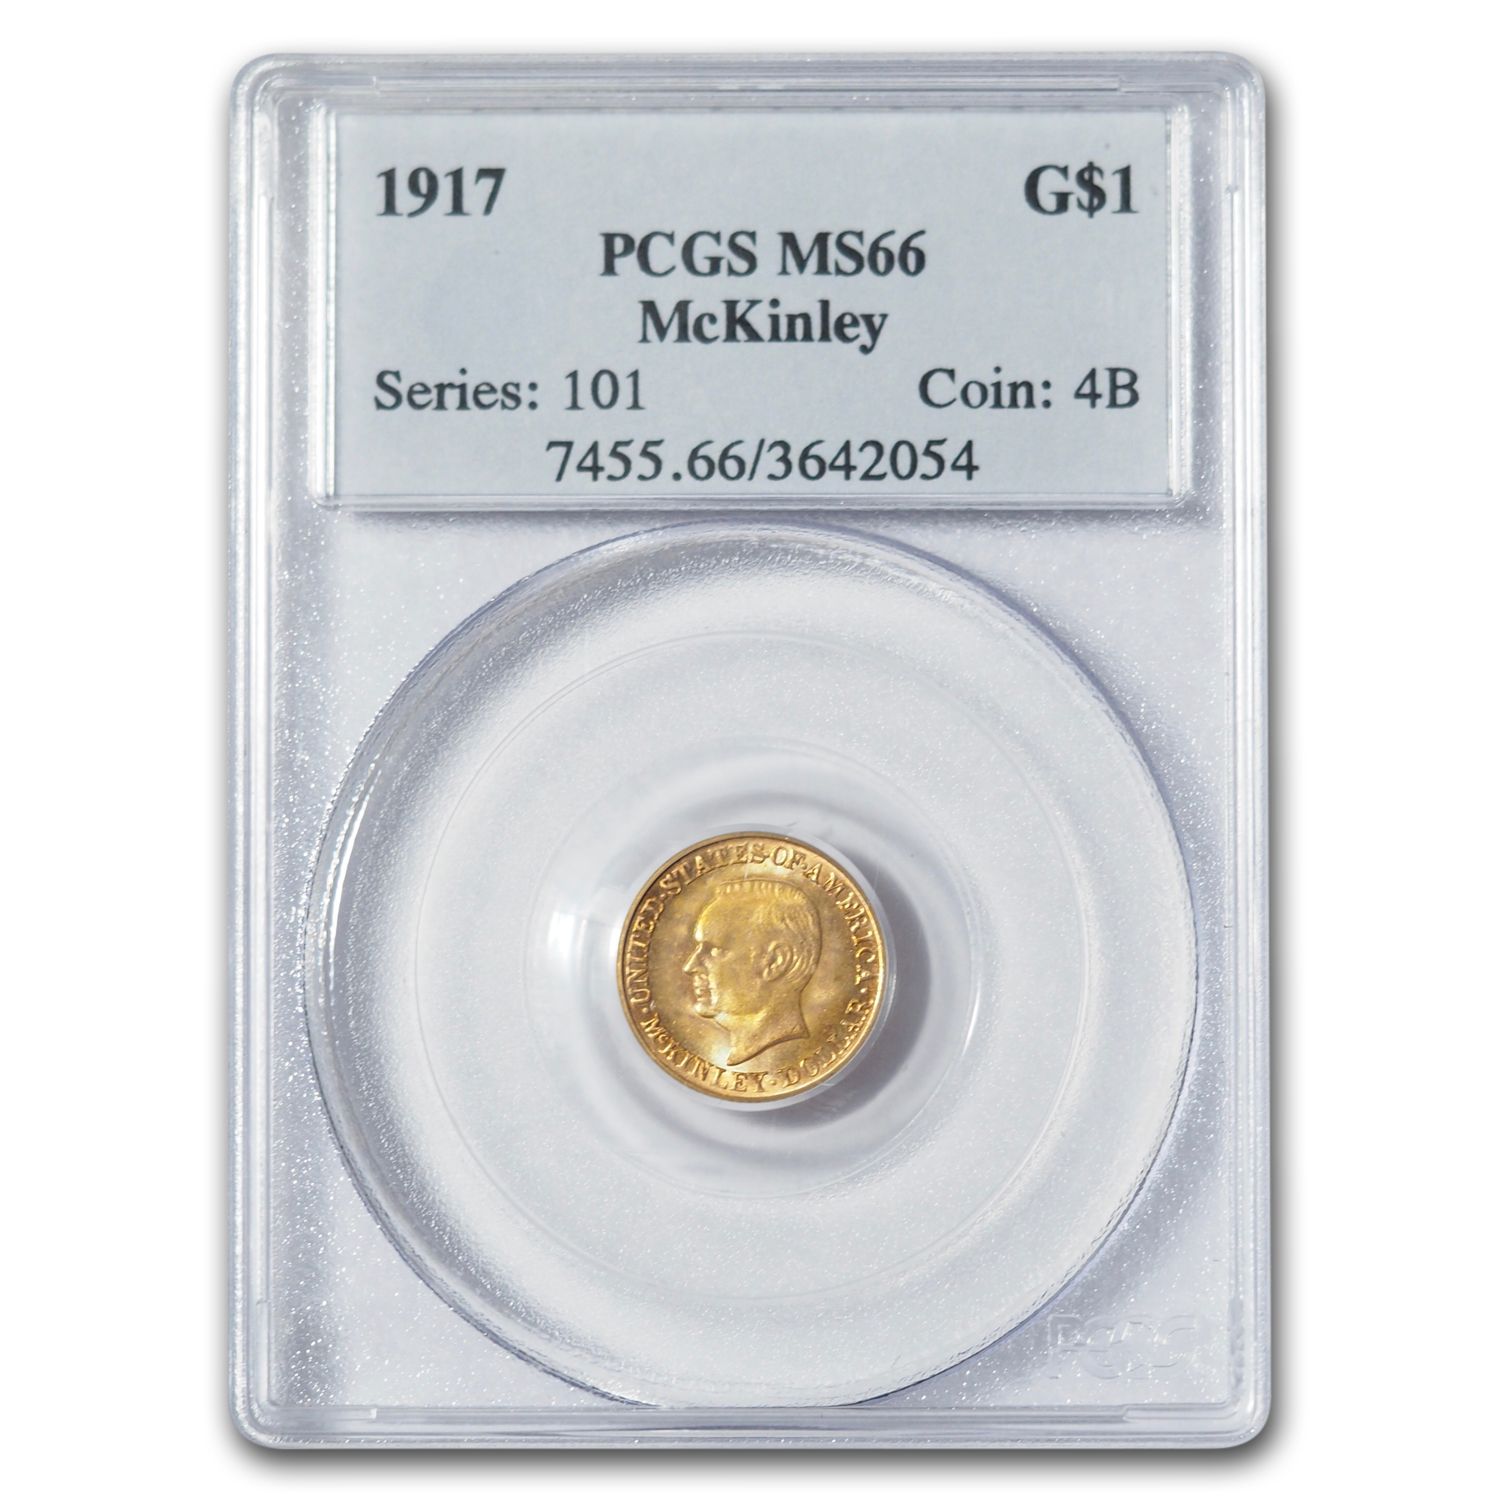 1917 $1.00 Gold McKinley MS-66 PCGS